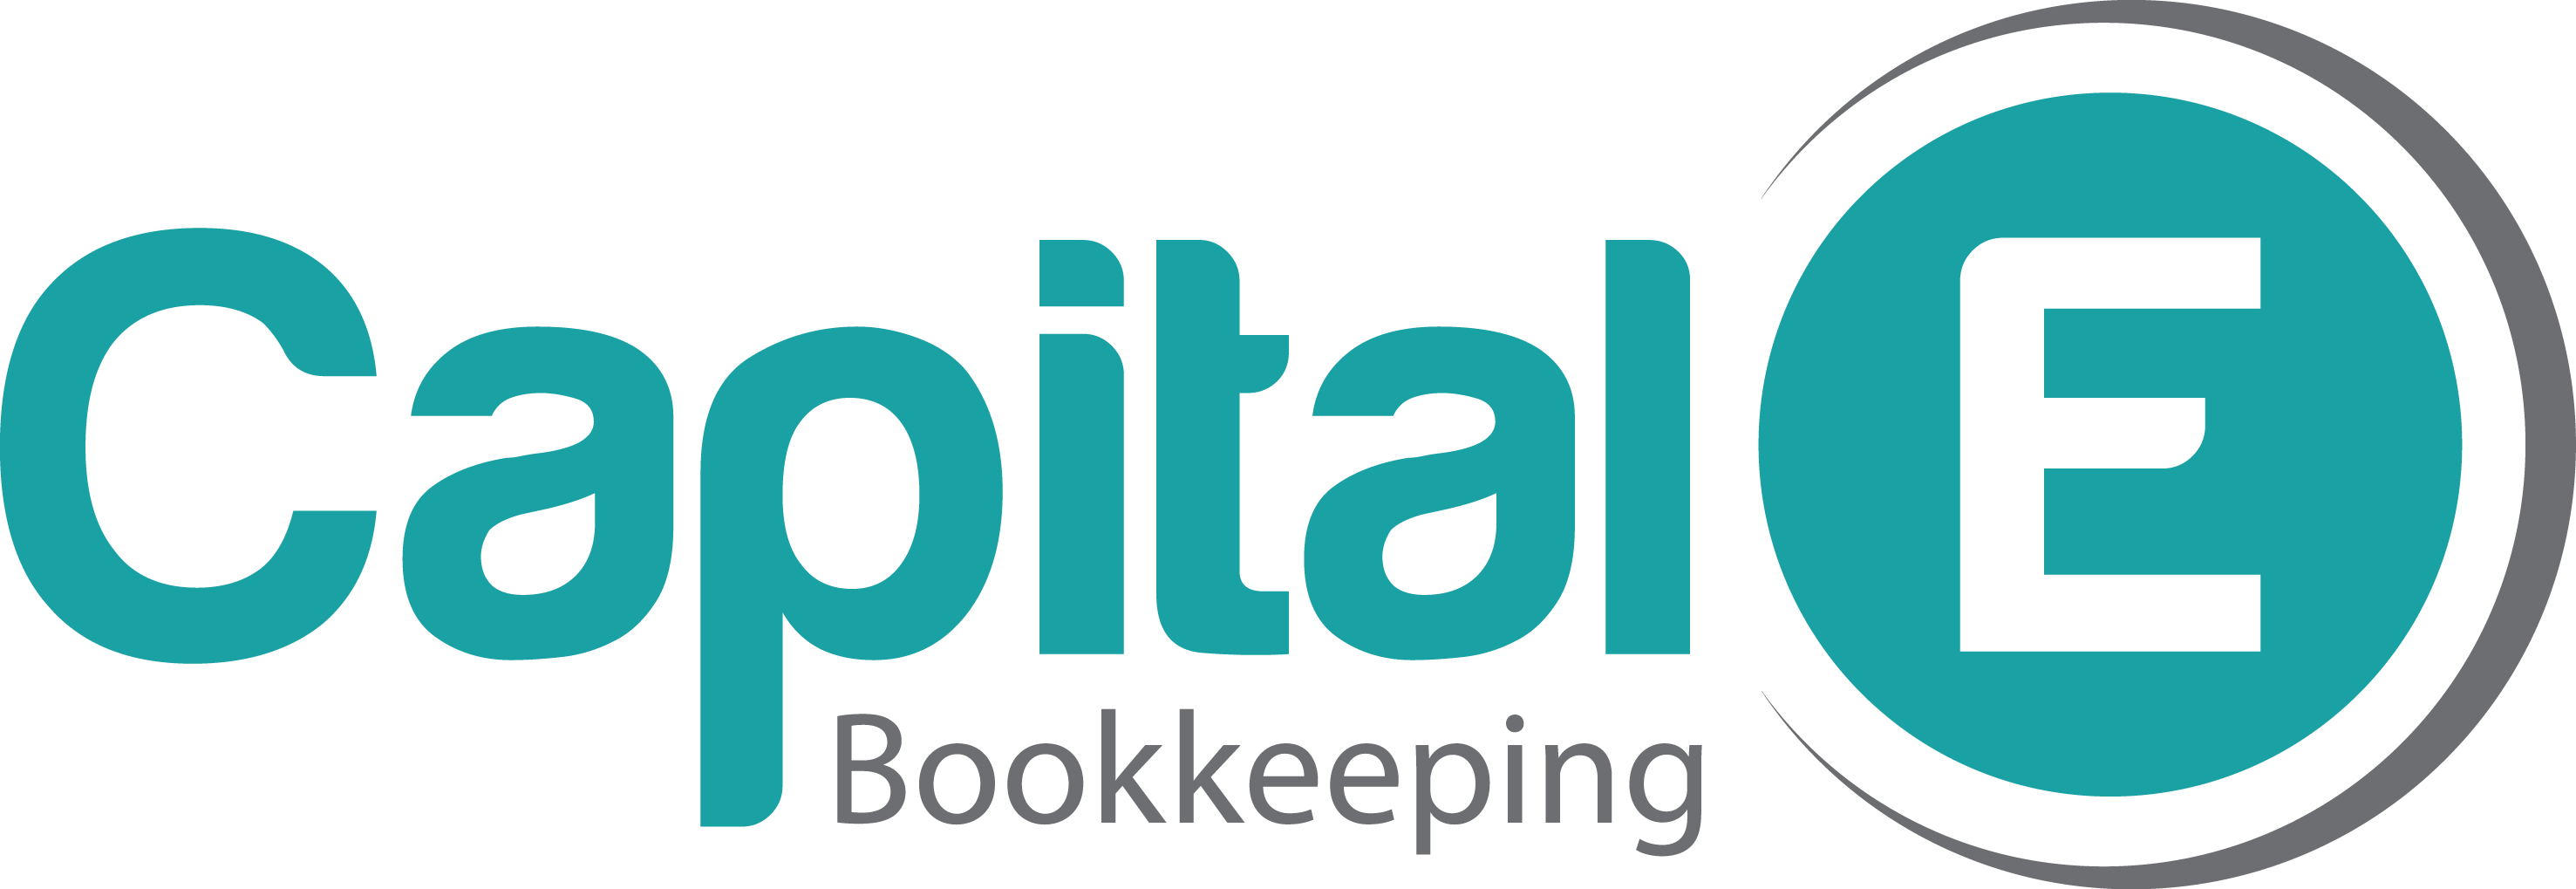 Capital E Bookkeeping